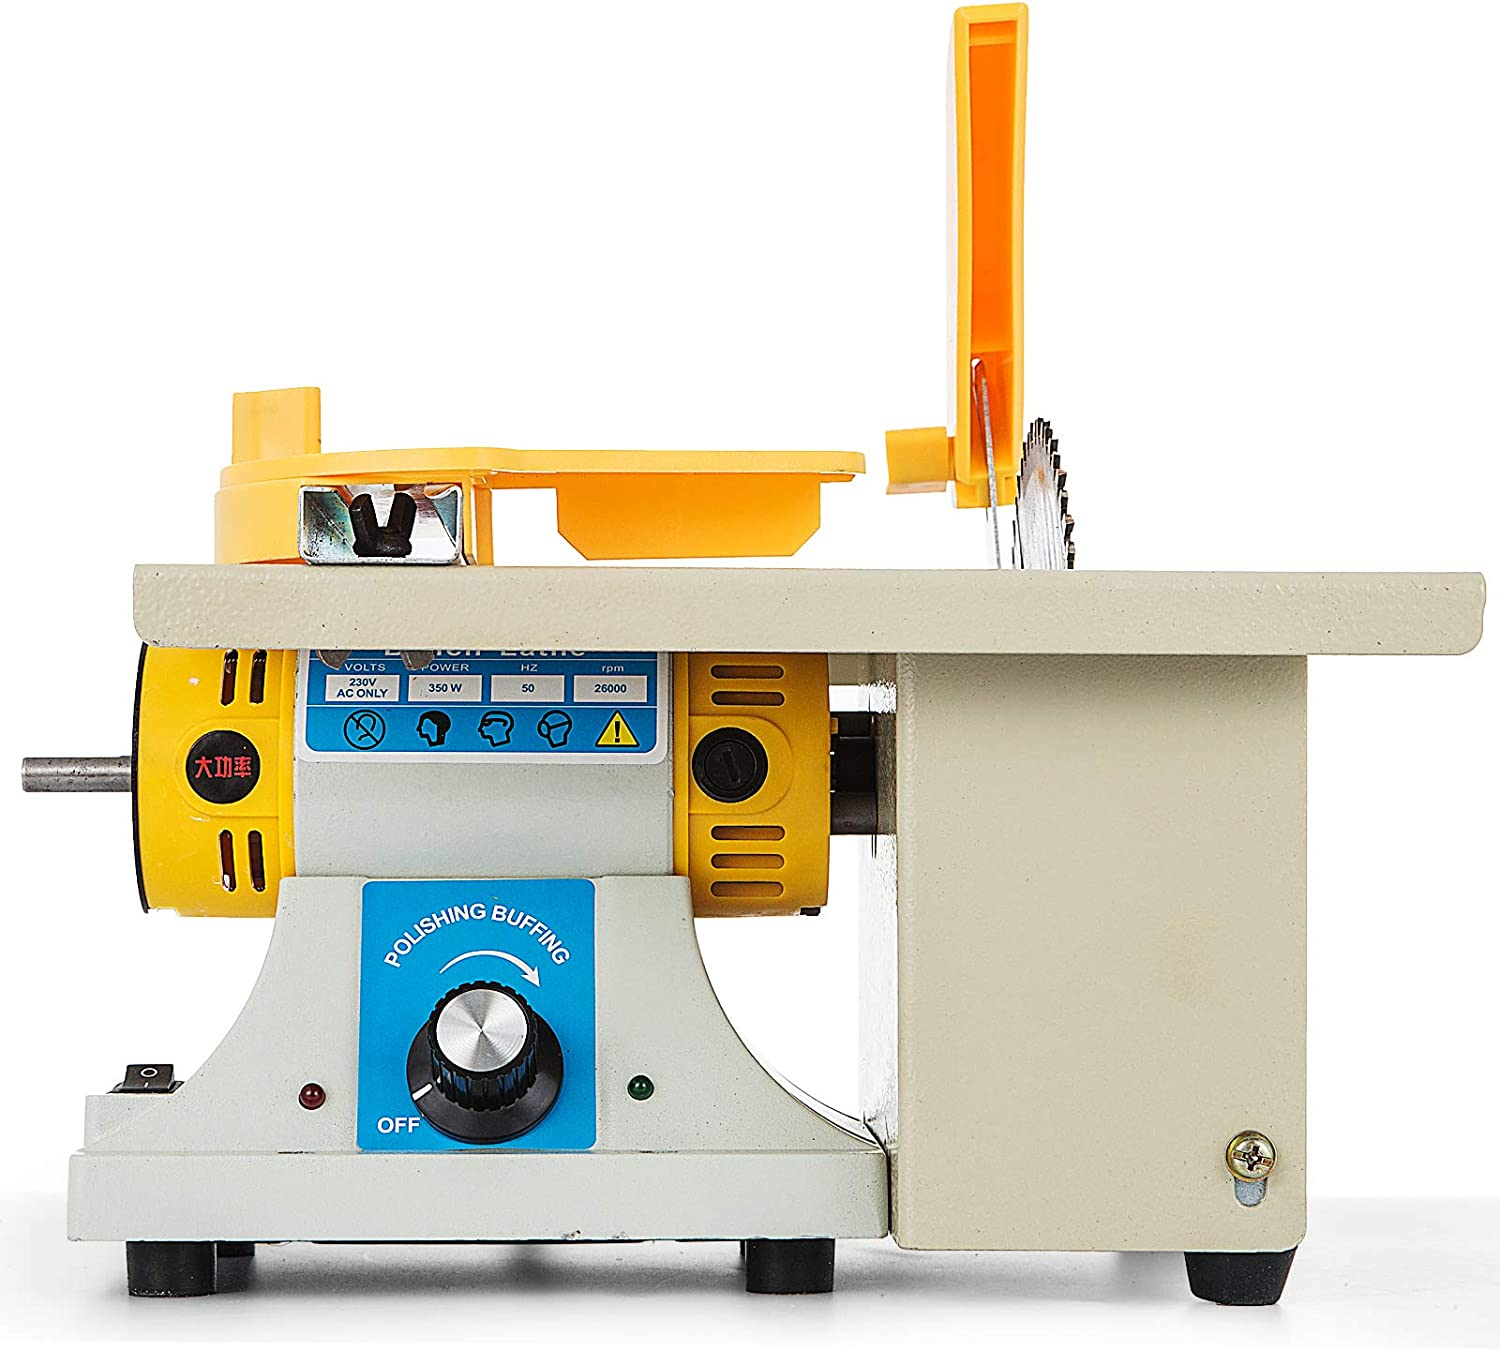 Mophorn carving machine Table Saws product image 3